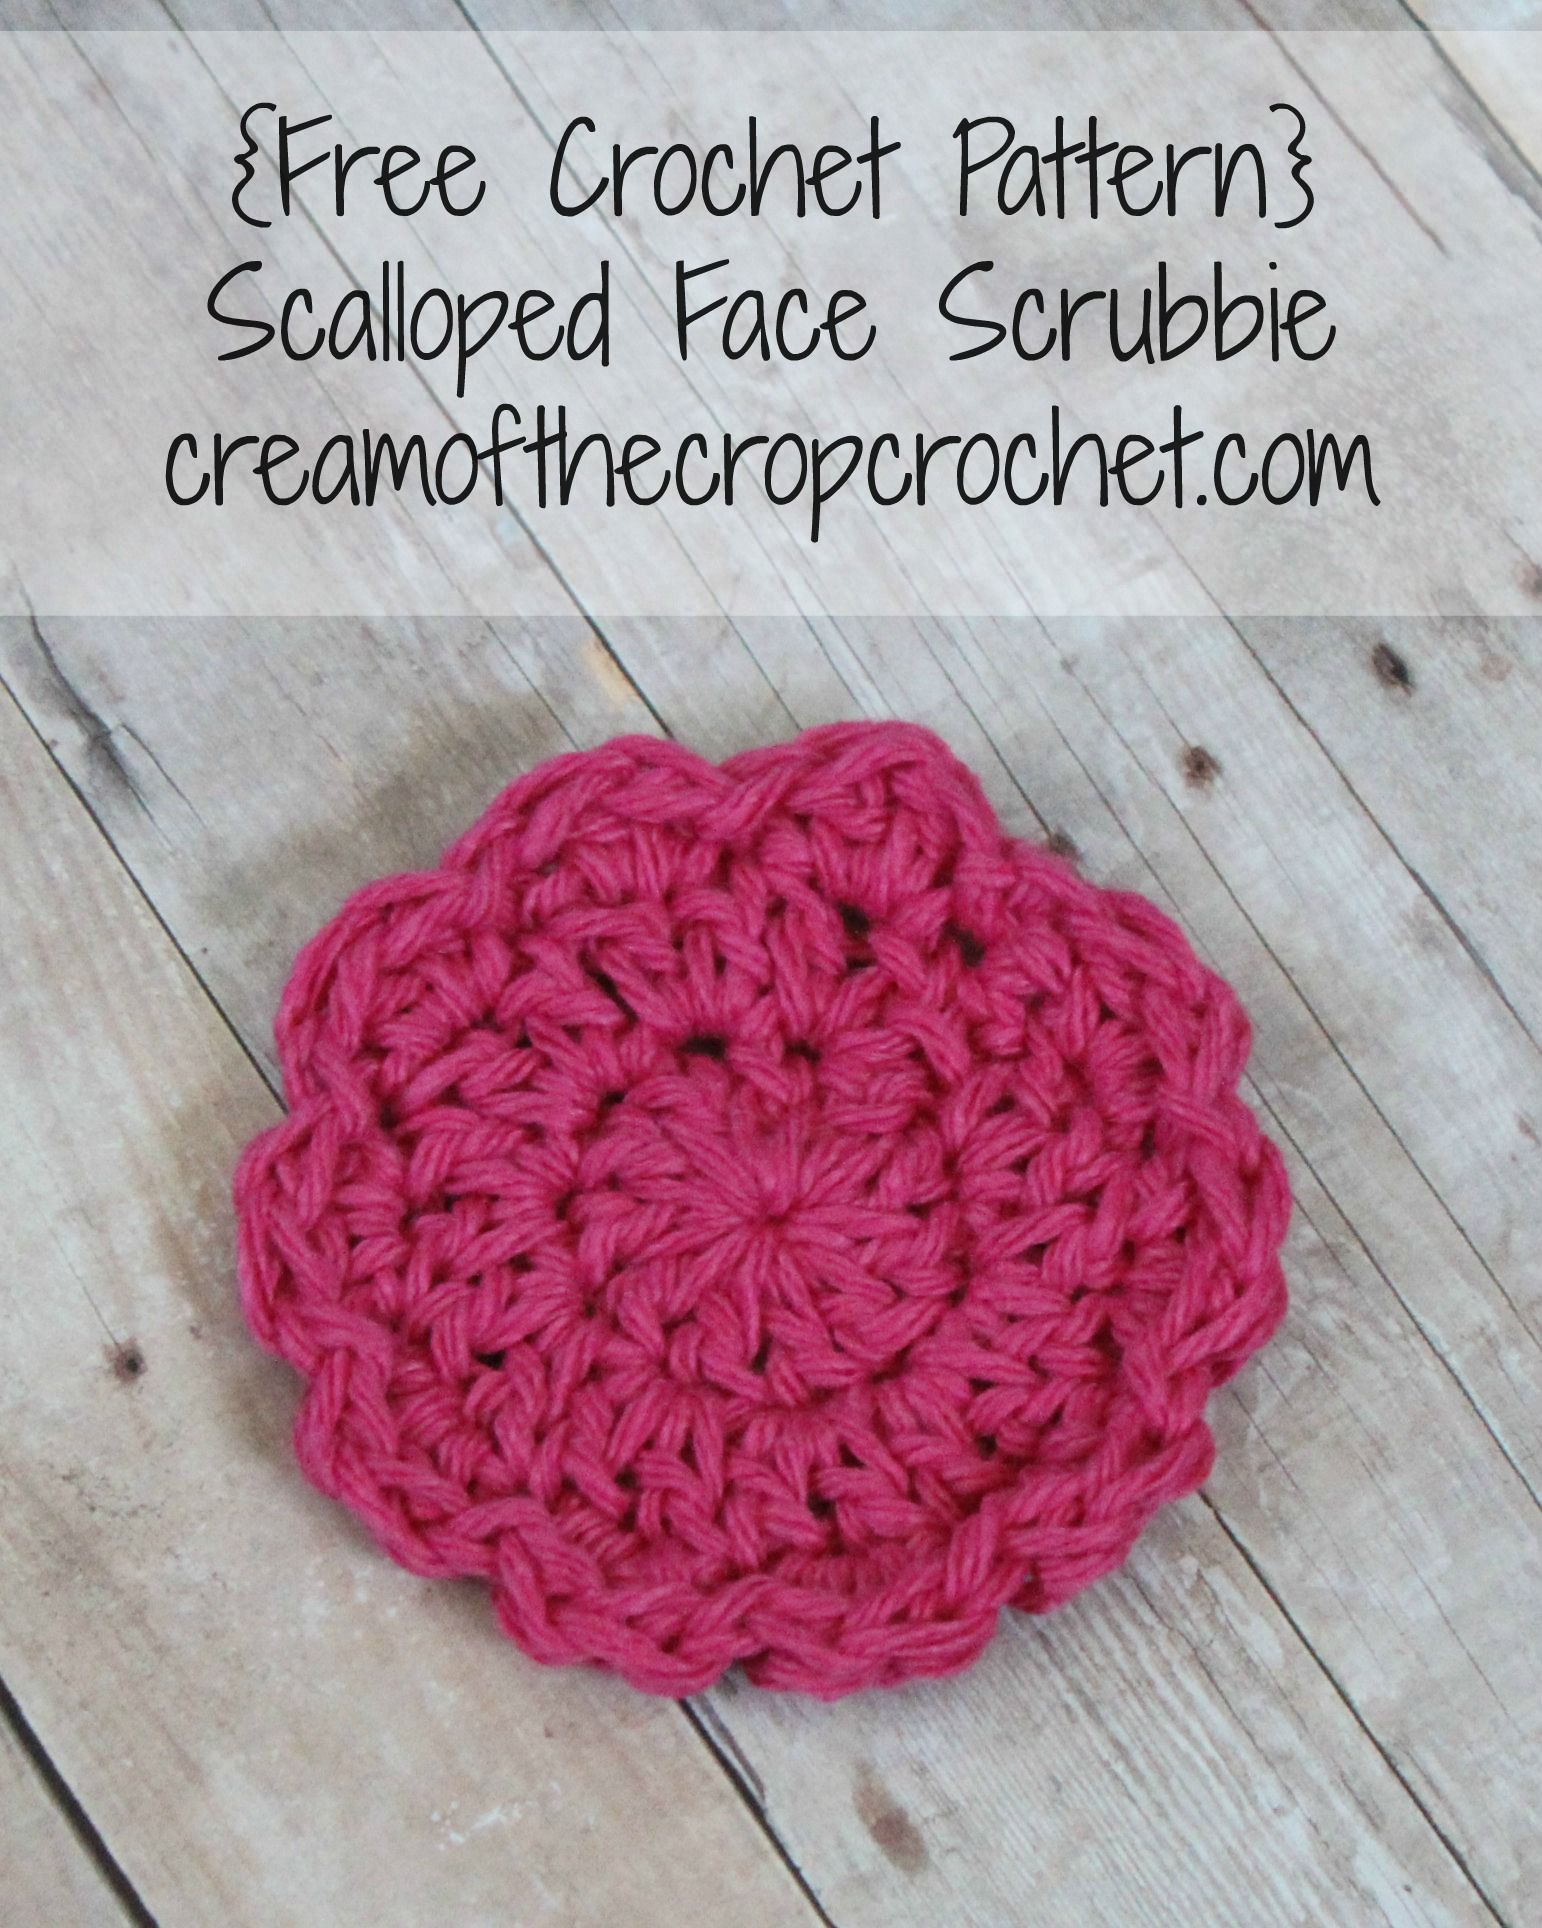 Scalloped Face Scrubbie Pattern | Face, Crochet and Patterns